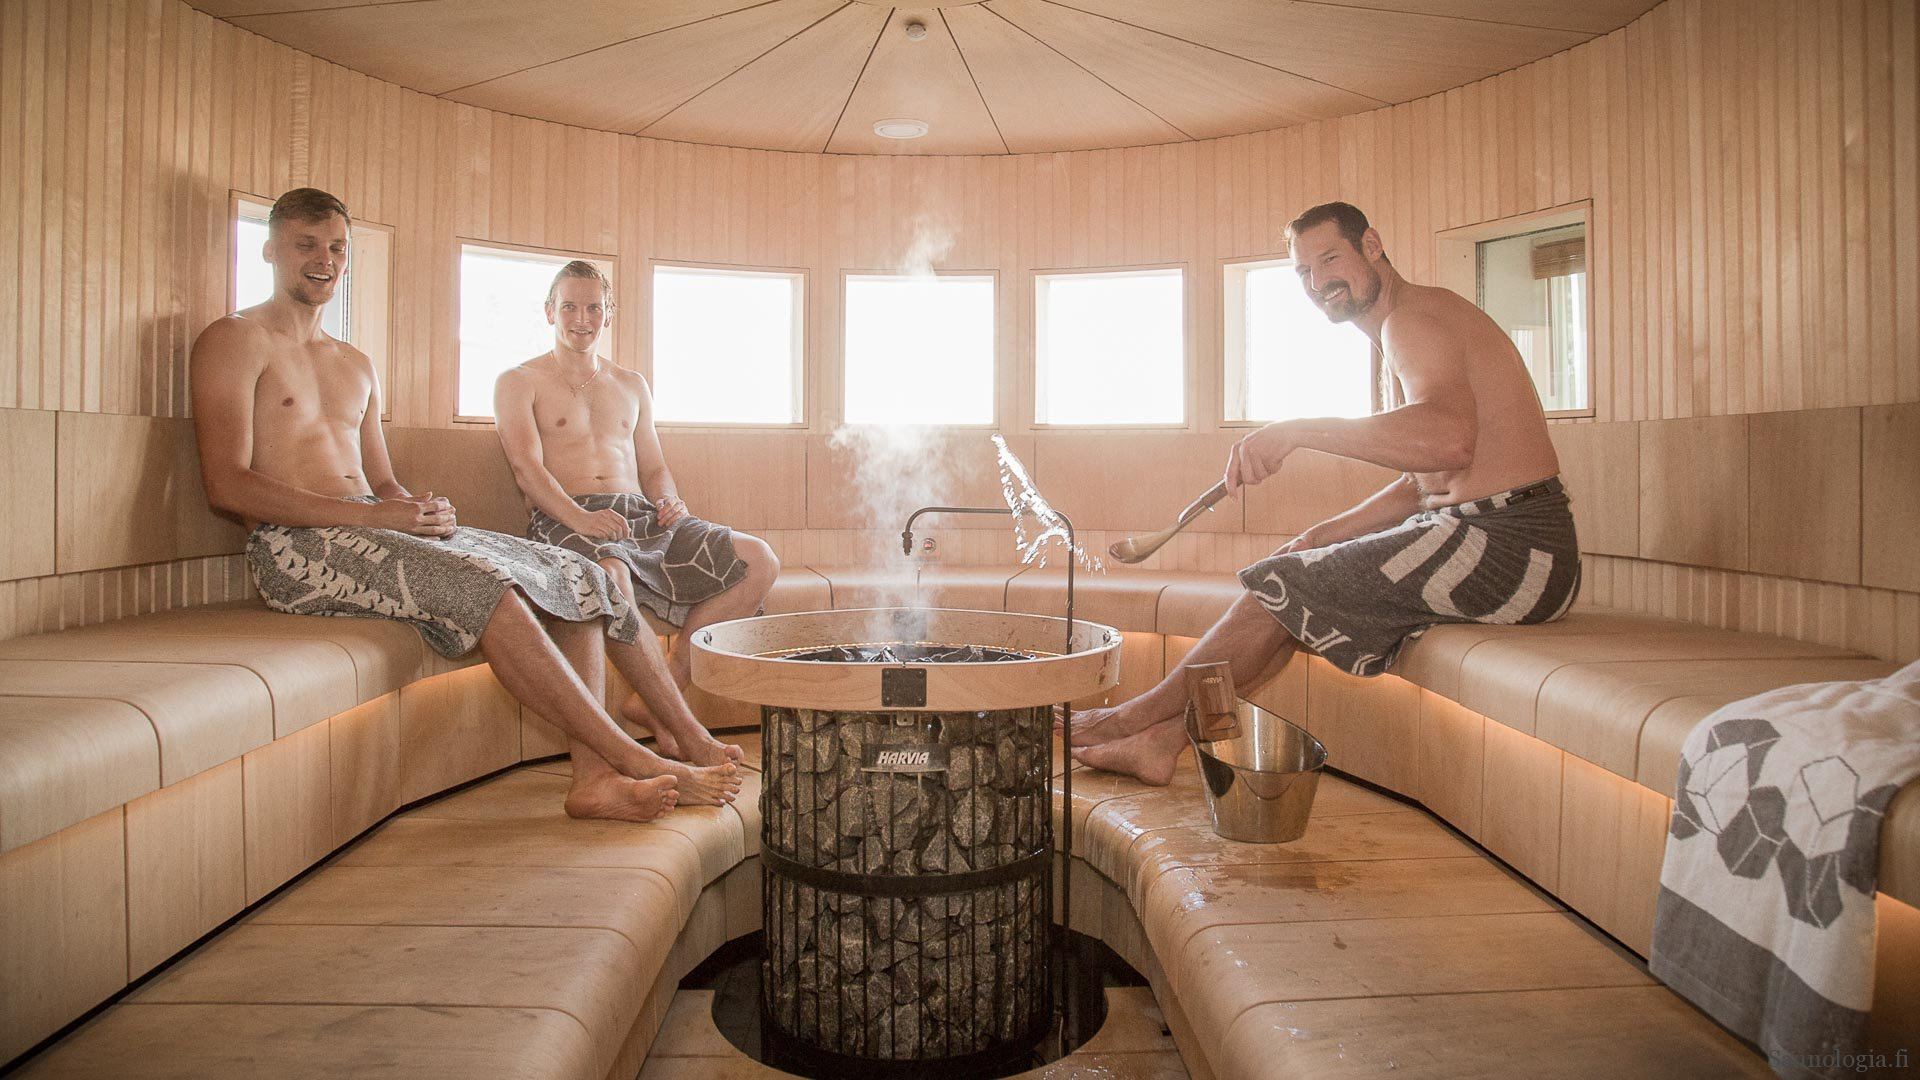 Three reasons why the health benefits of sauna only come with a proper sauna